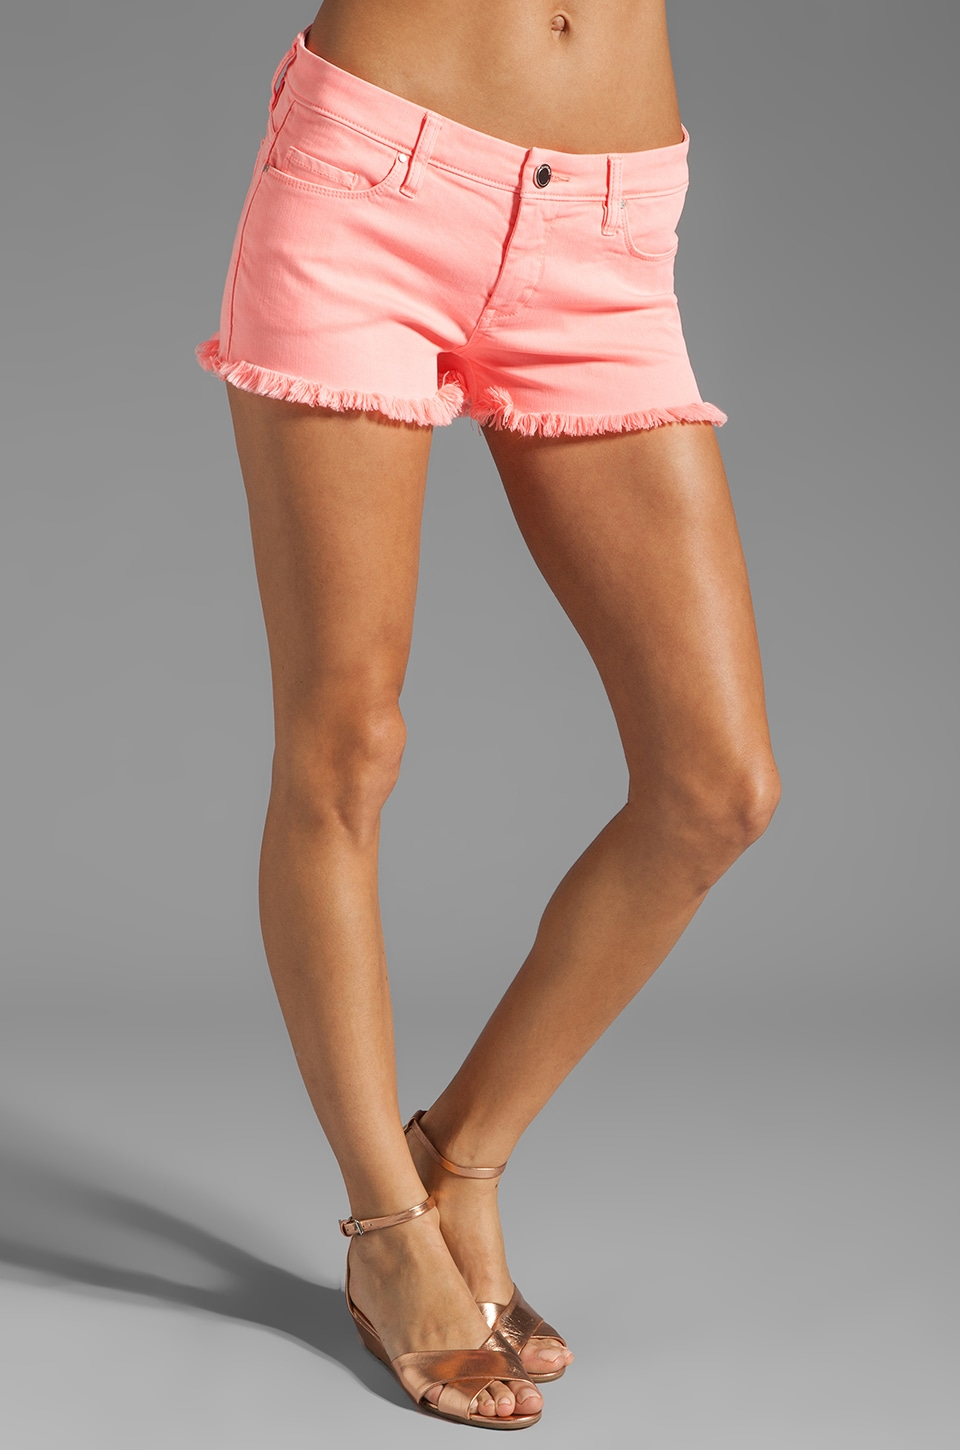 BLANKNYC Cut Off Short in Chick Fit